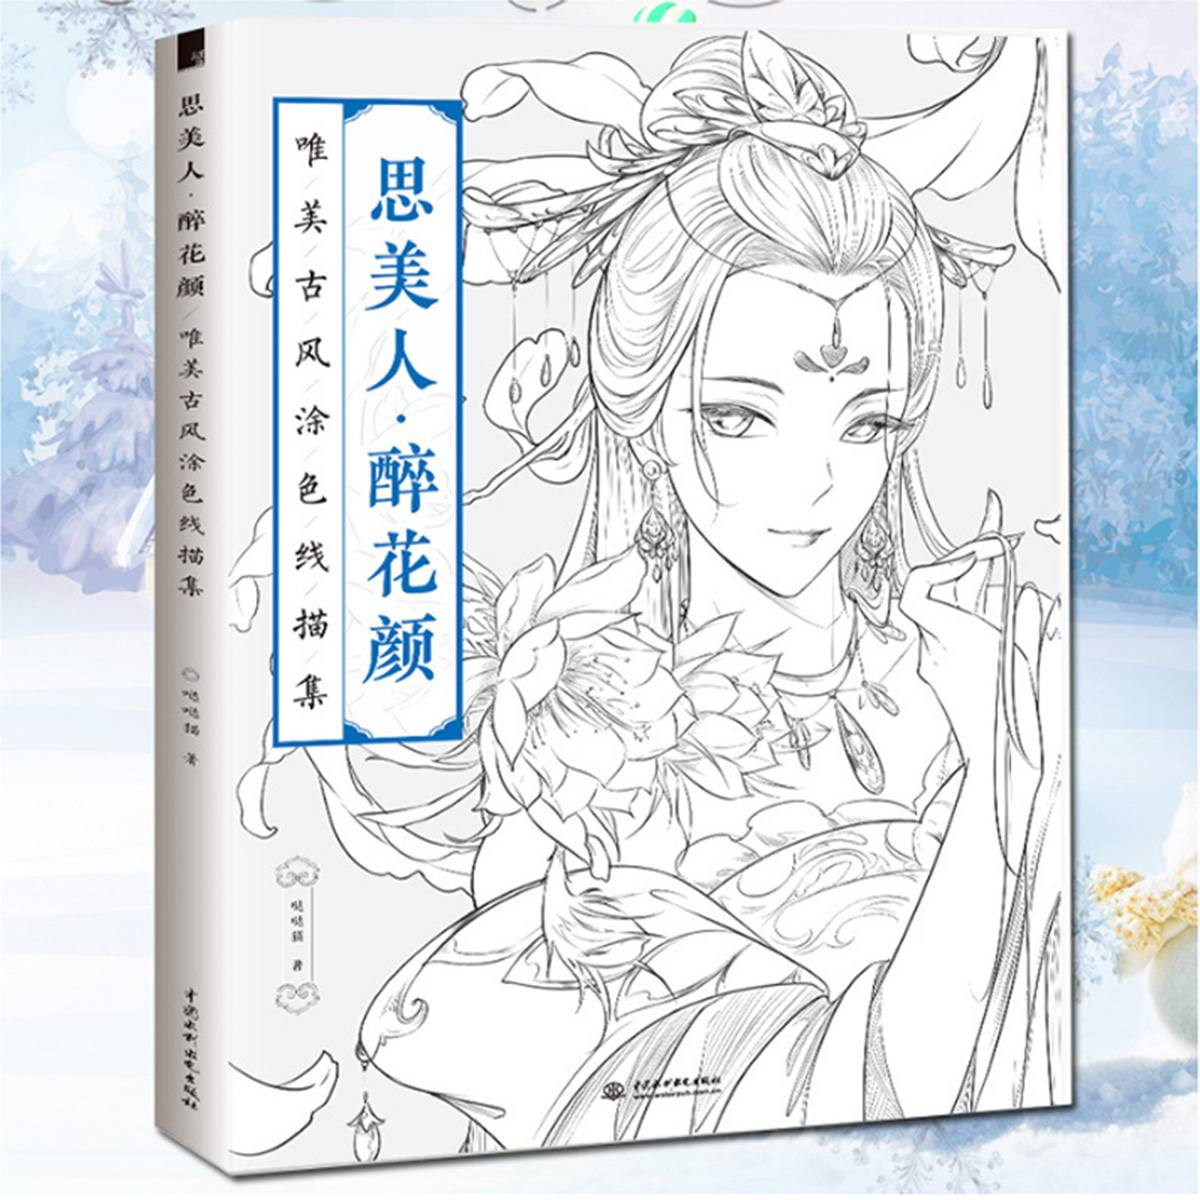 Chinese Coloring Books for Adults Kids Classical Ancient Beauty Relaxation Anti Stress Colouring Book Line Drawing Textbook Chinese Coloring Books for Adults Kids Classical Ancient Beauty Relaxation Anti Stress Colouring Book Line Drawing Textbook